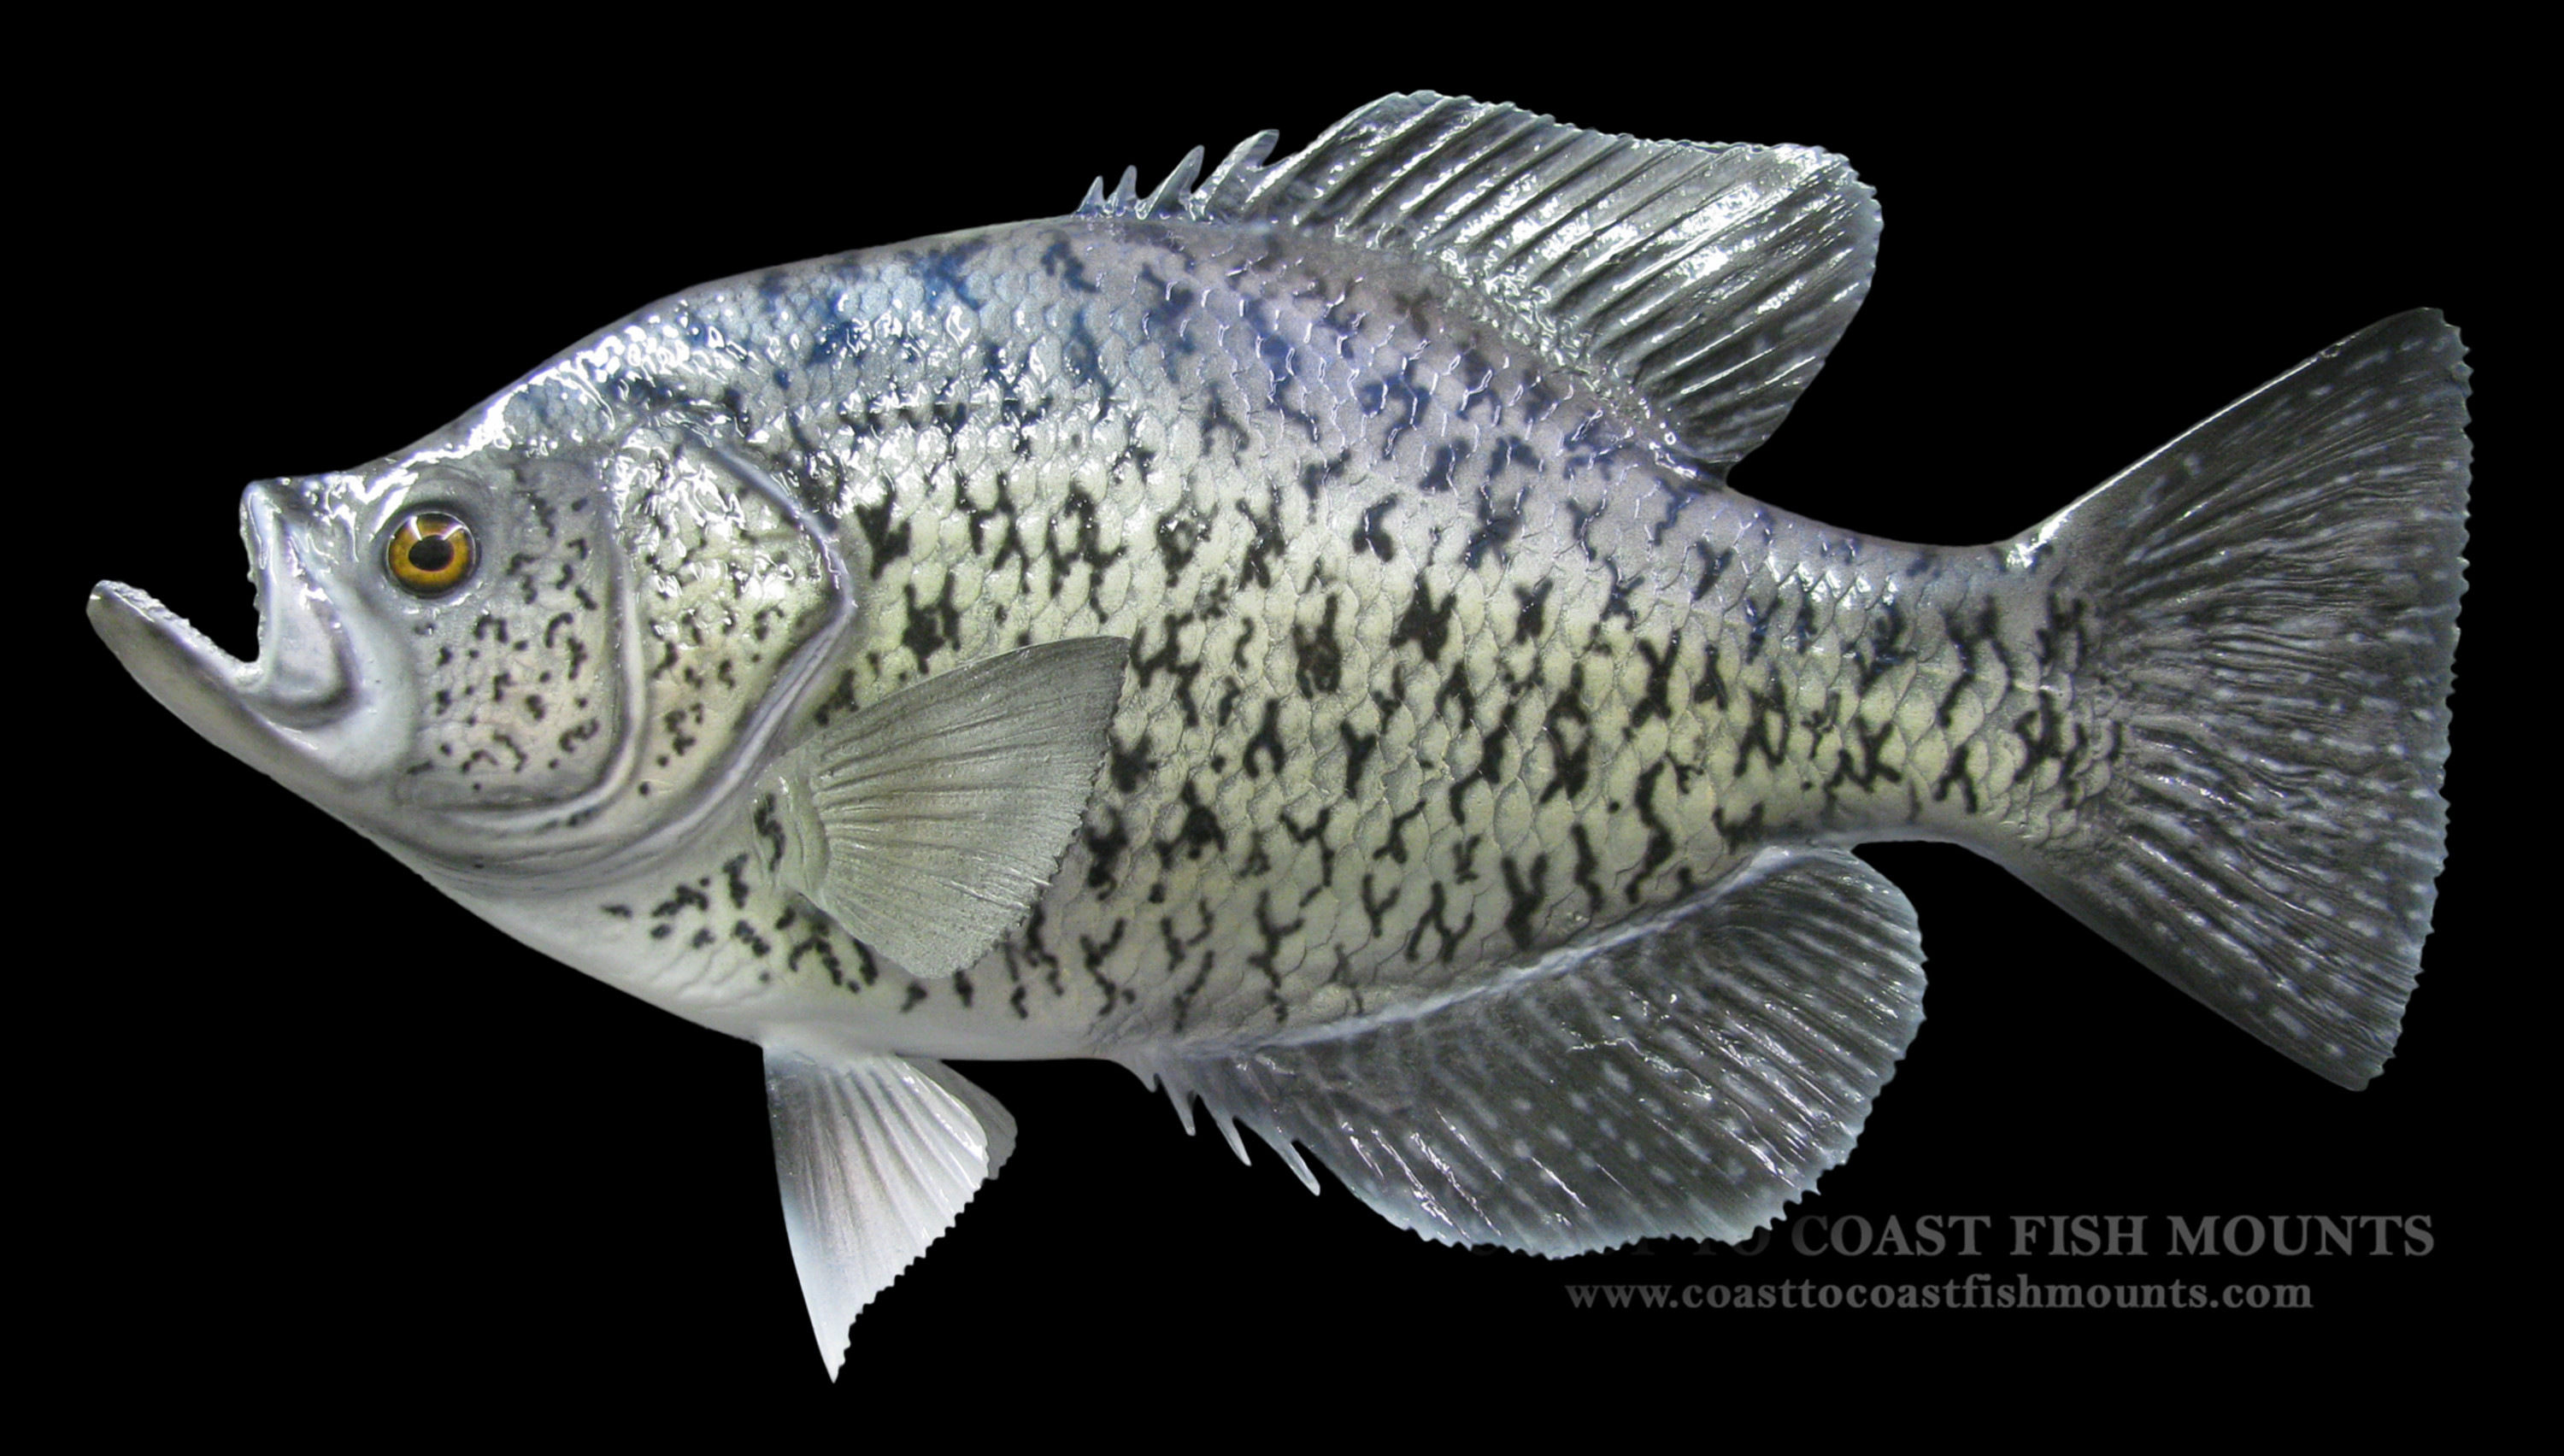 Calico bass crappie fish mount and fish replicas coast for Pictures of crappie fish